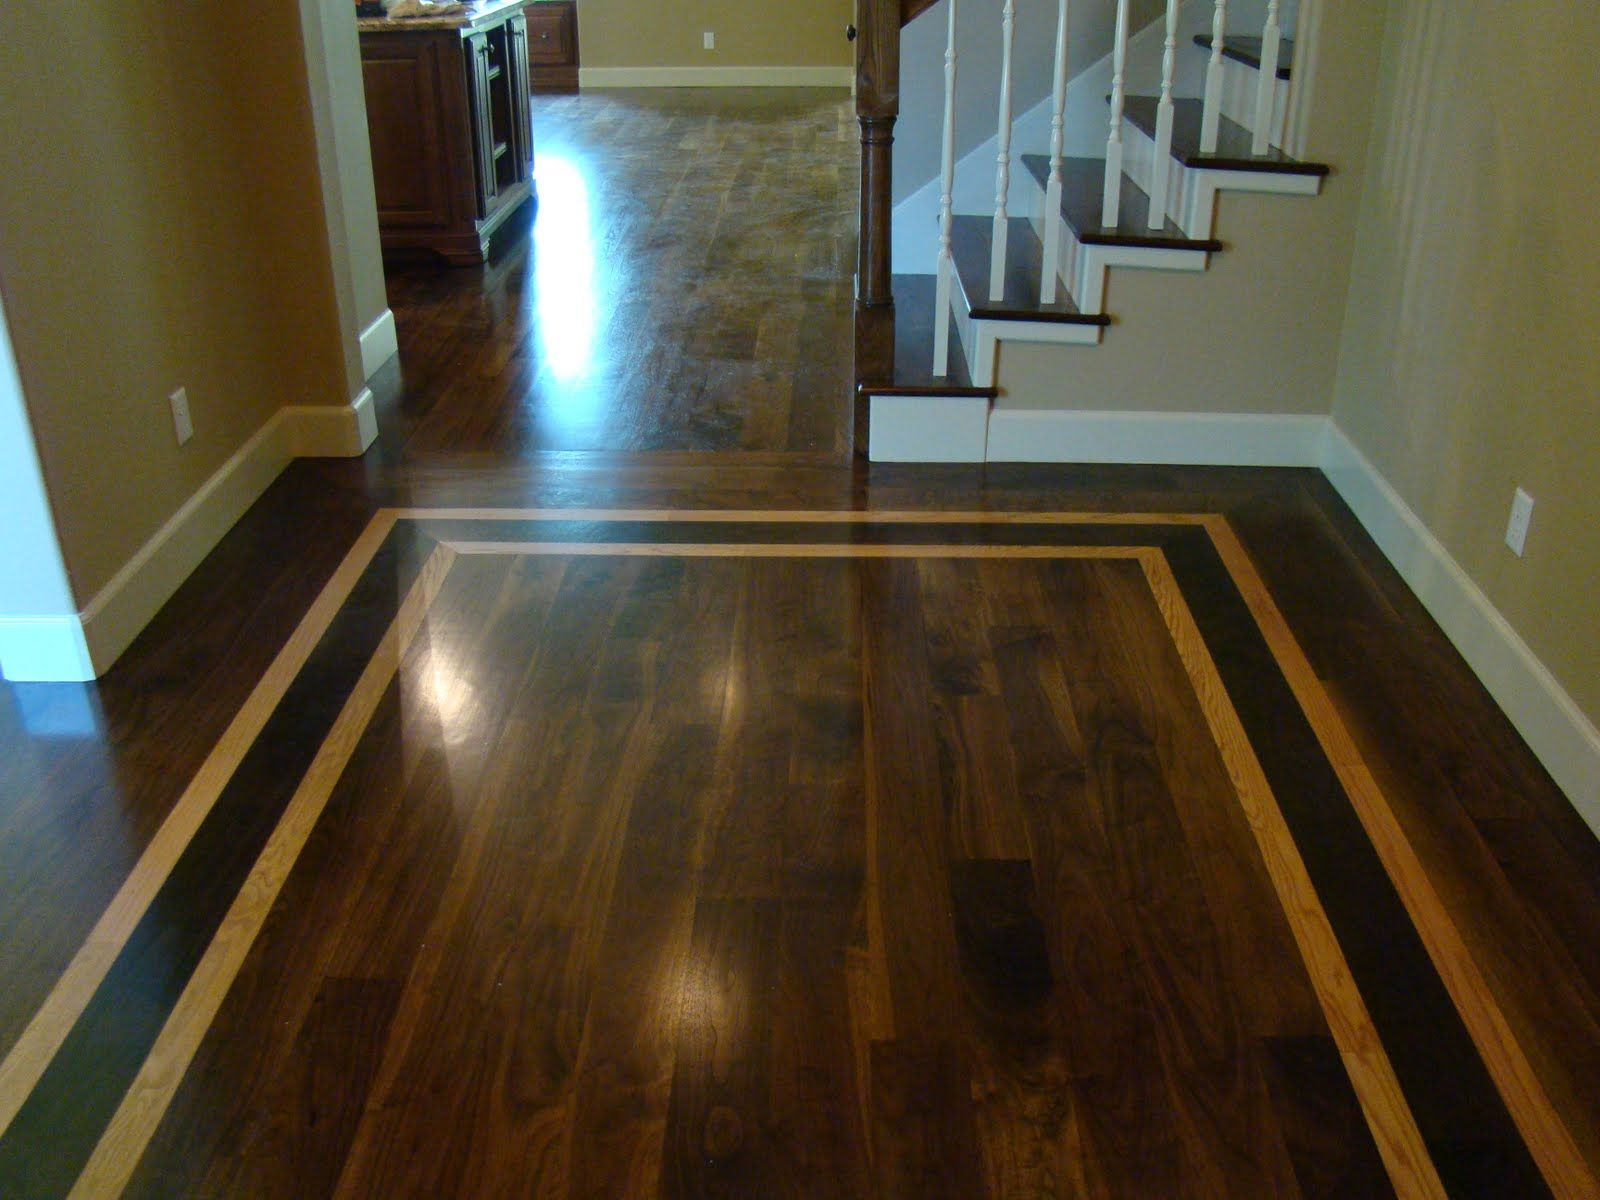 Awesome Wood Floor Inlays | Reviews Wood Floor Inlay Long Island Refinish Restore  Hardwoods Pic #3